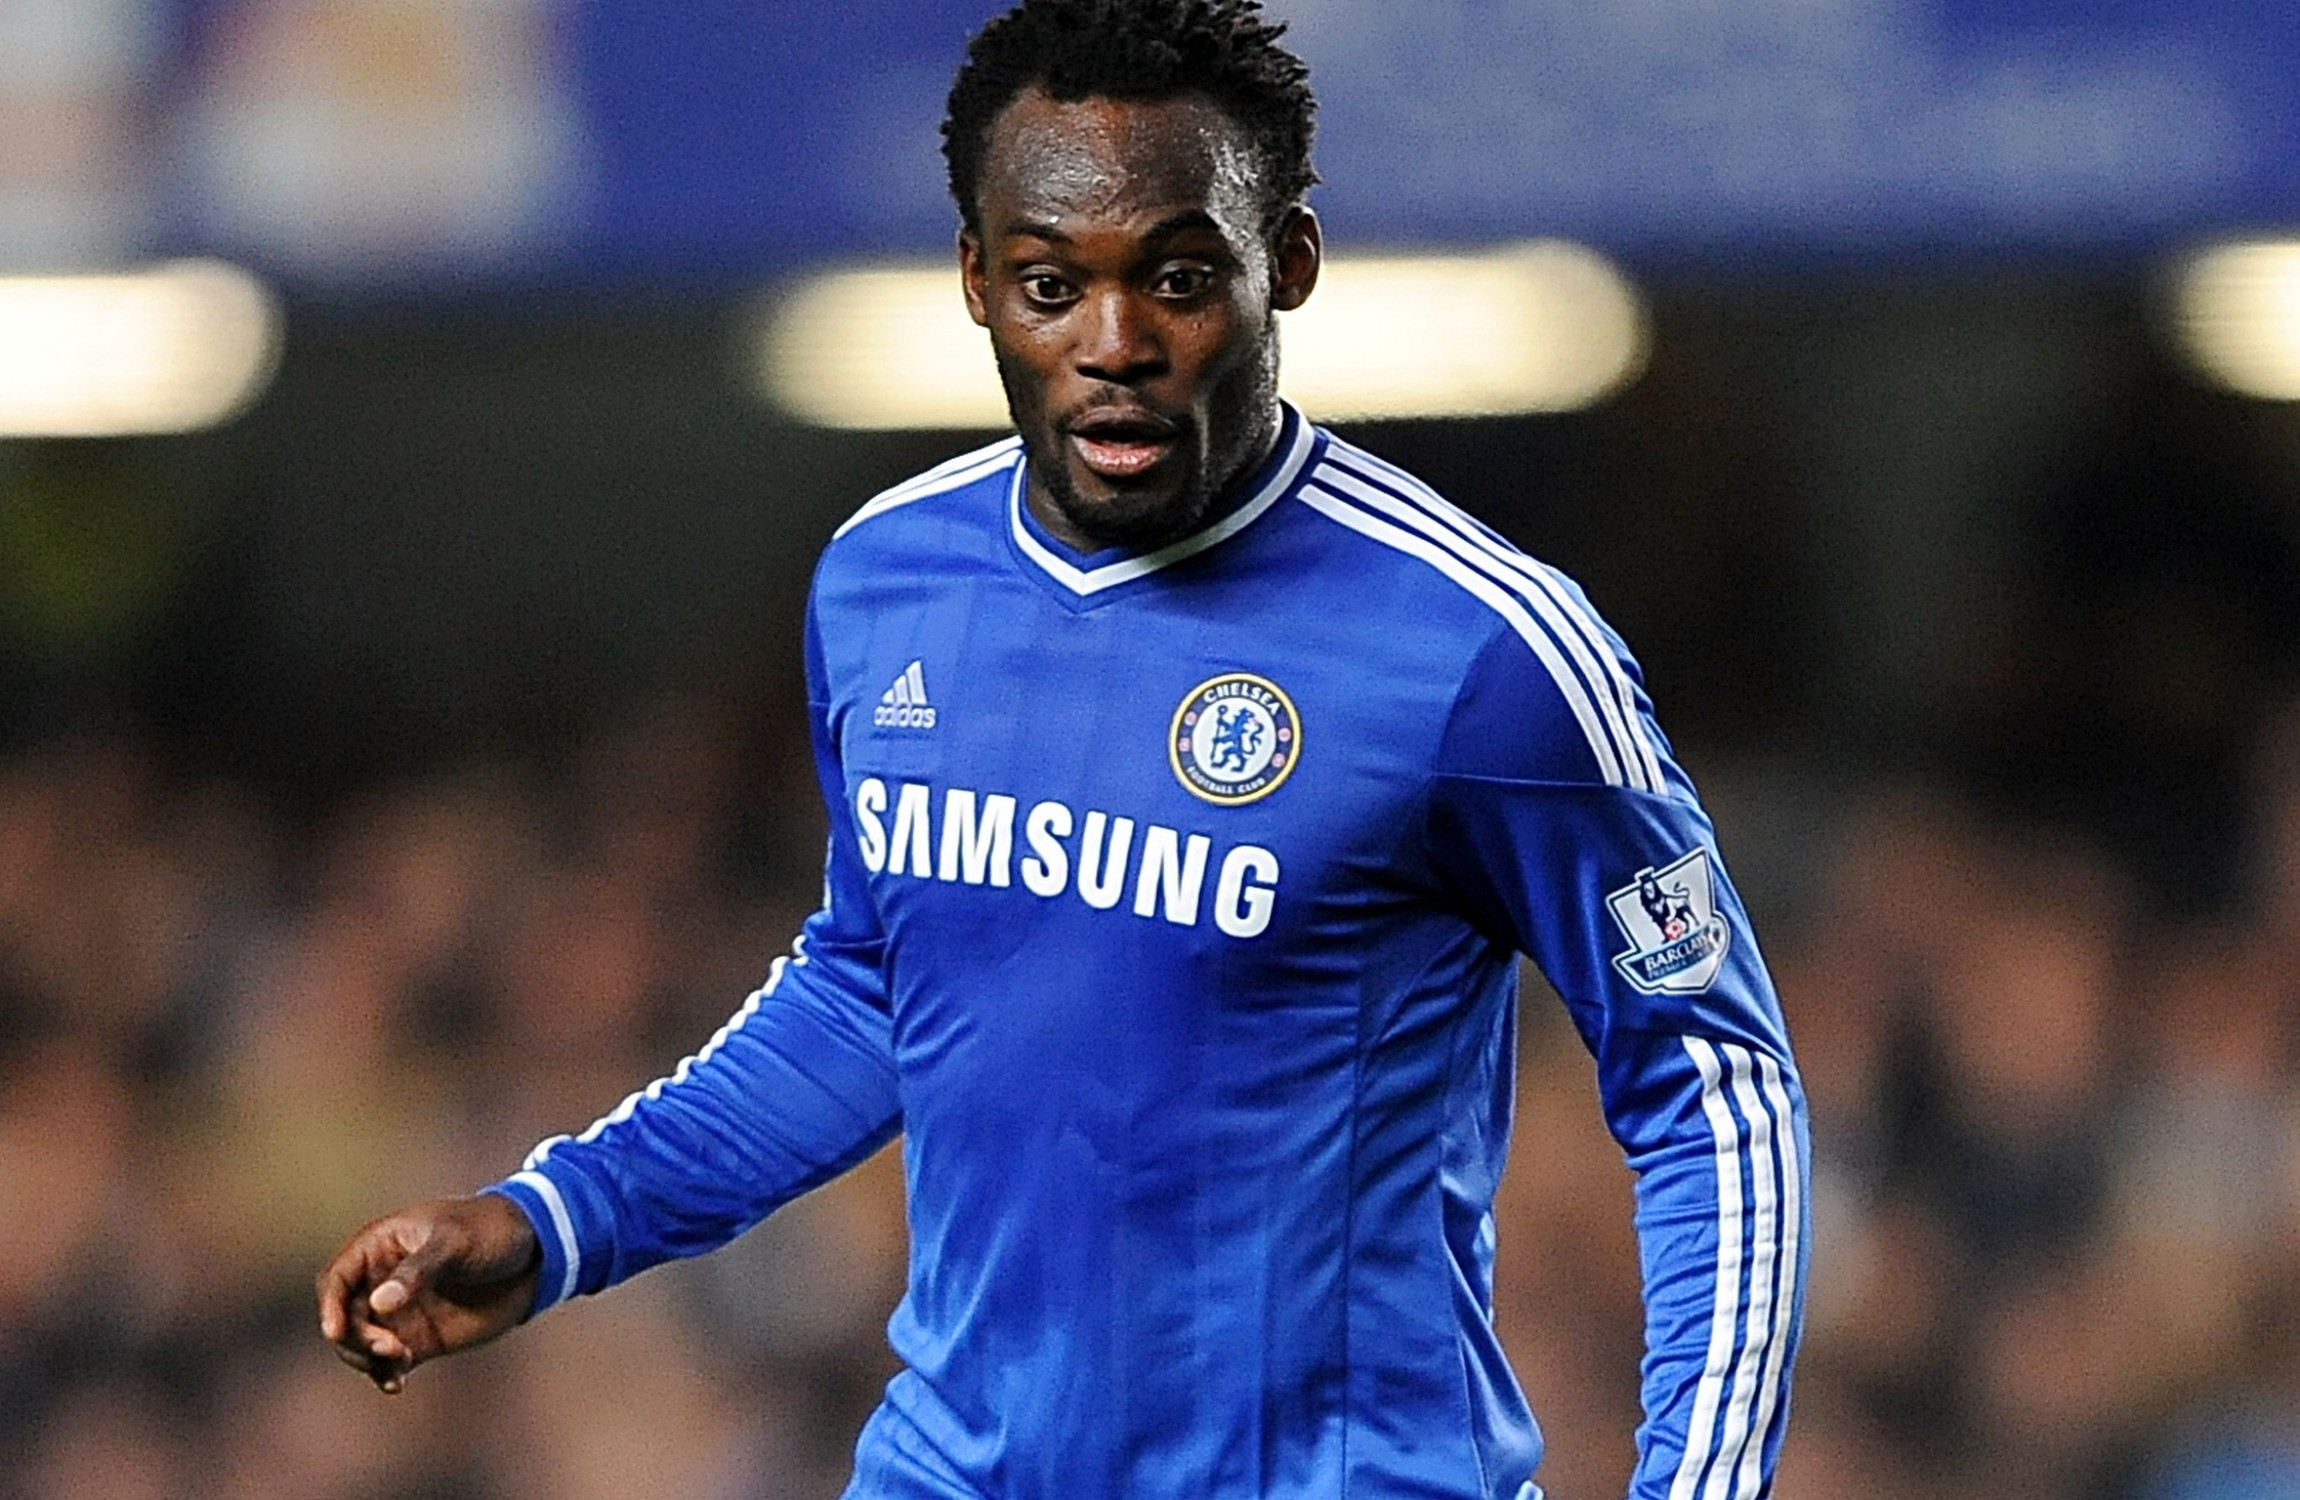 Ex Chelsea duo Essien and Cole caught without work permits after